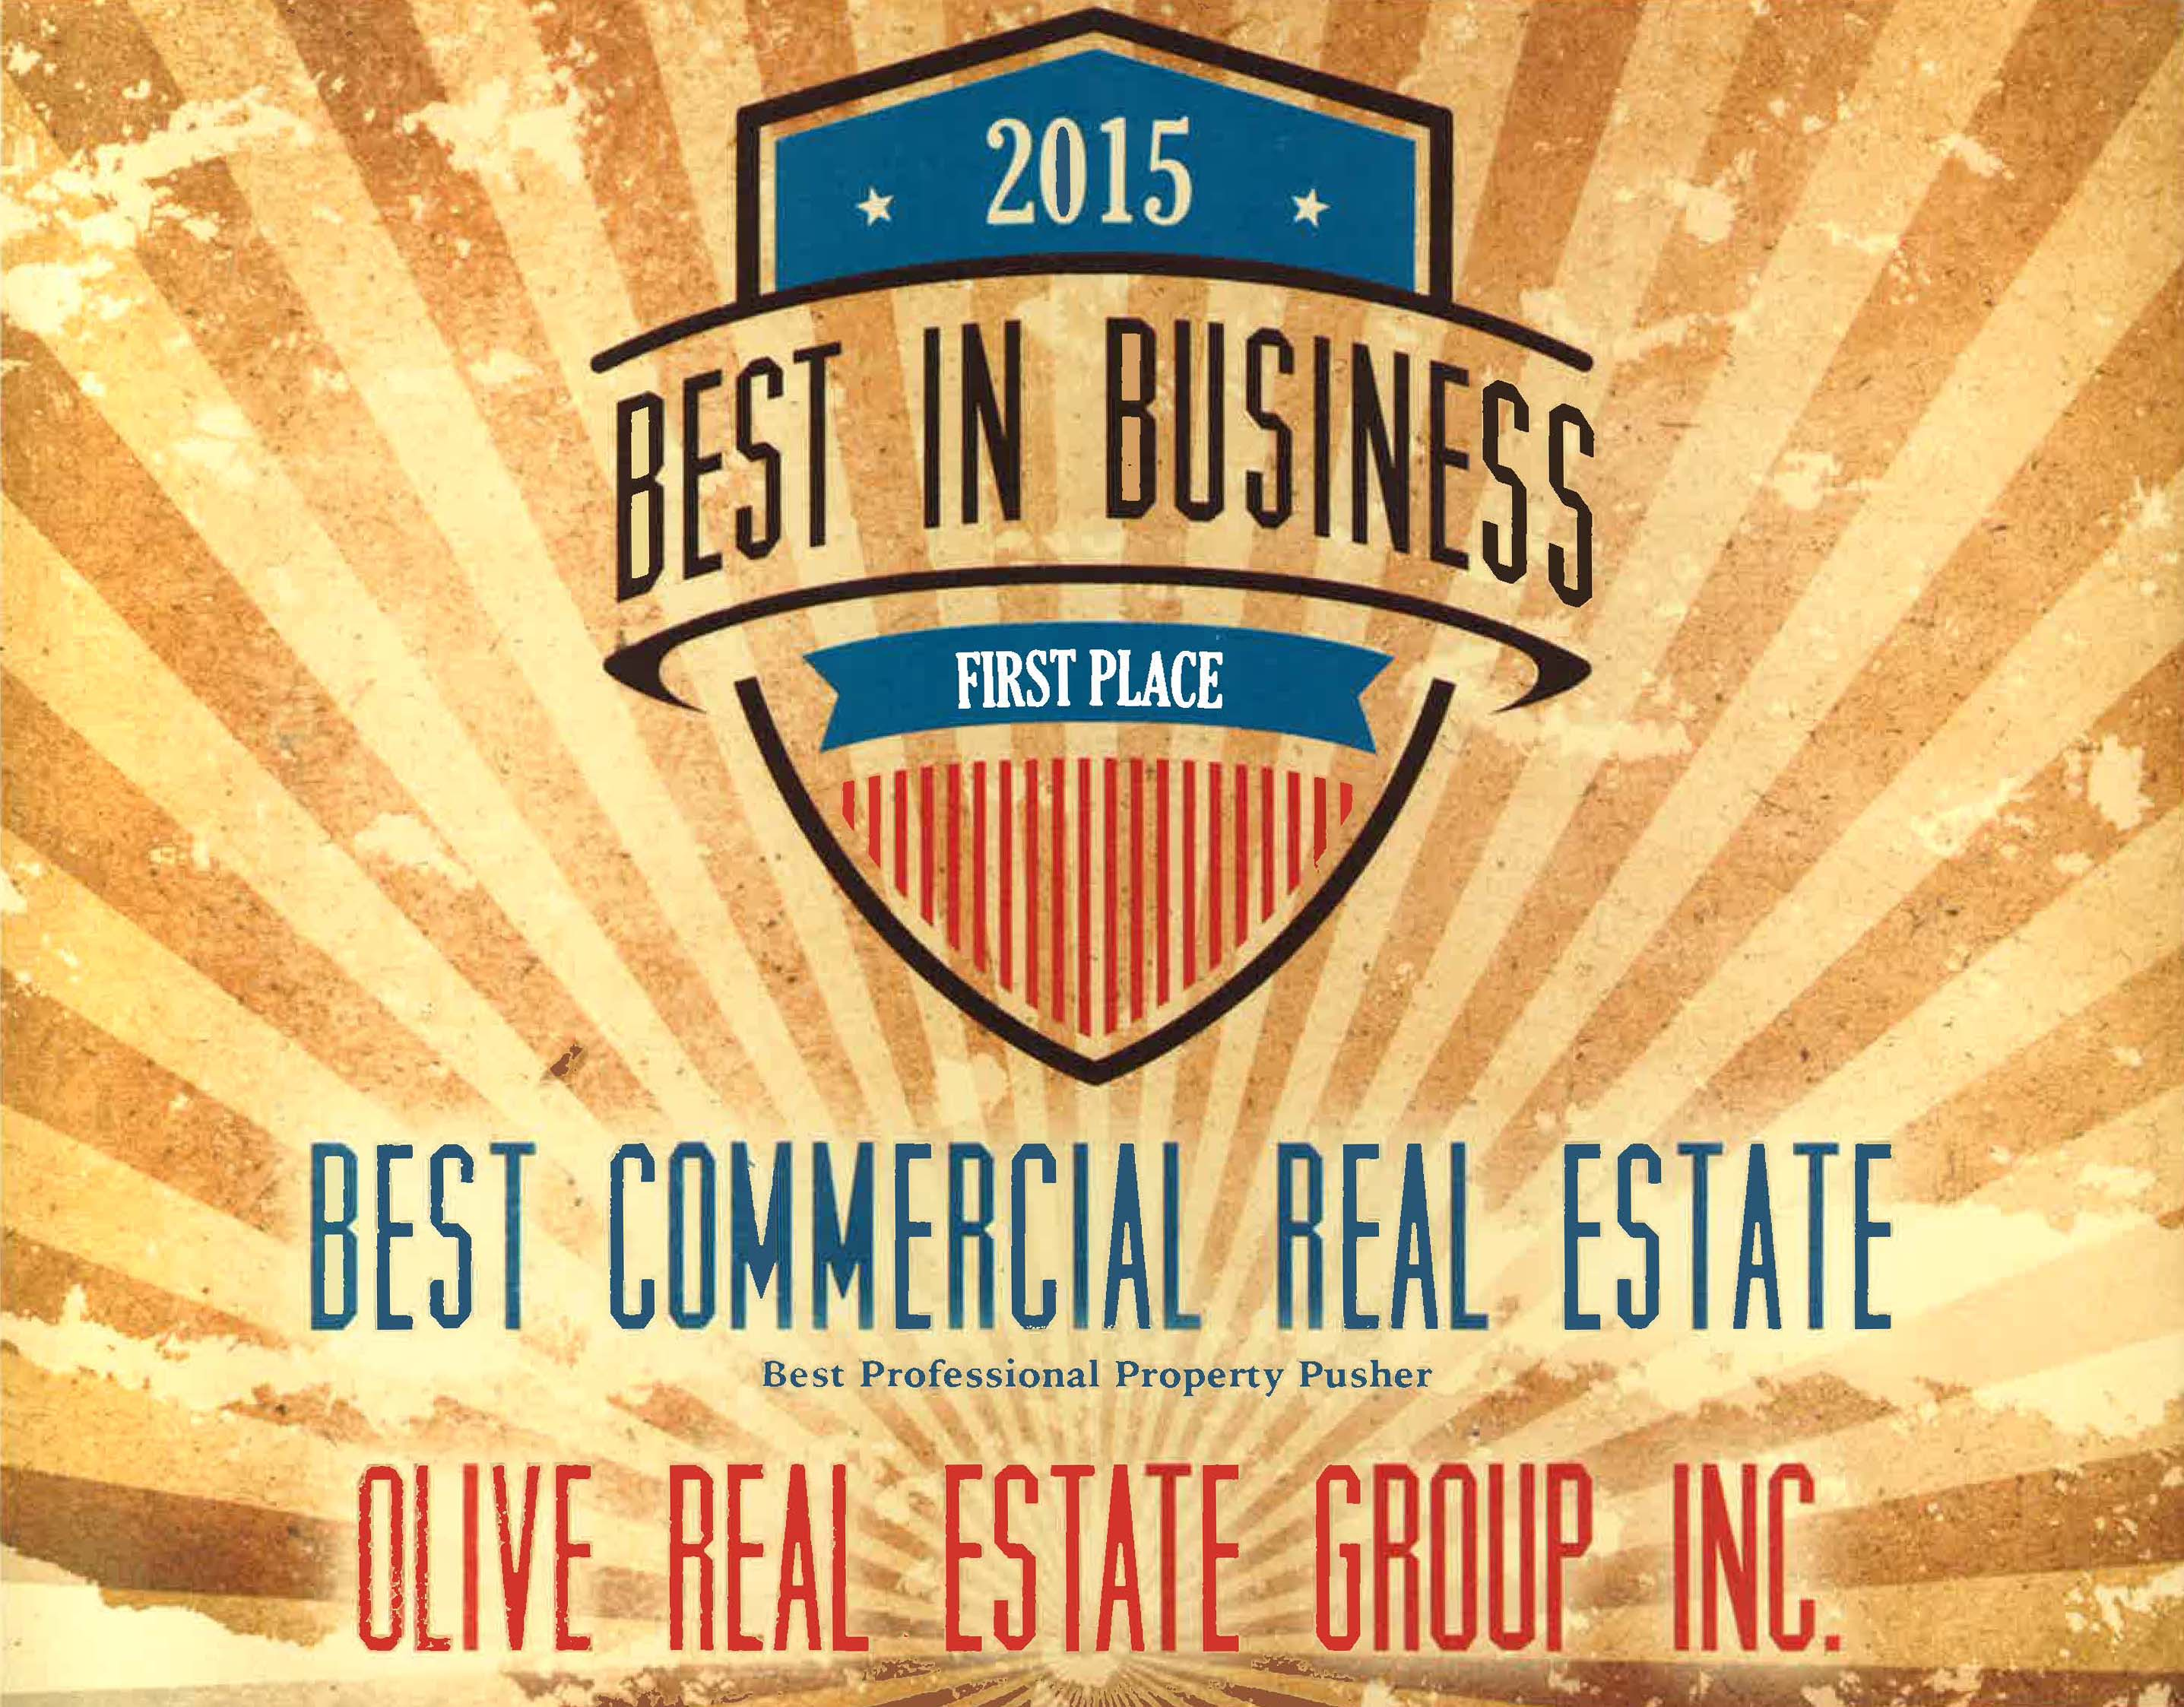 Best in Business: Celebrating the successes